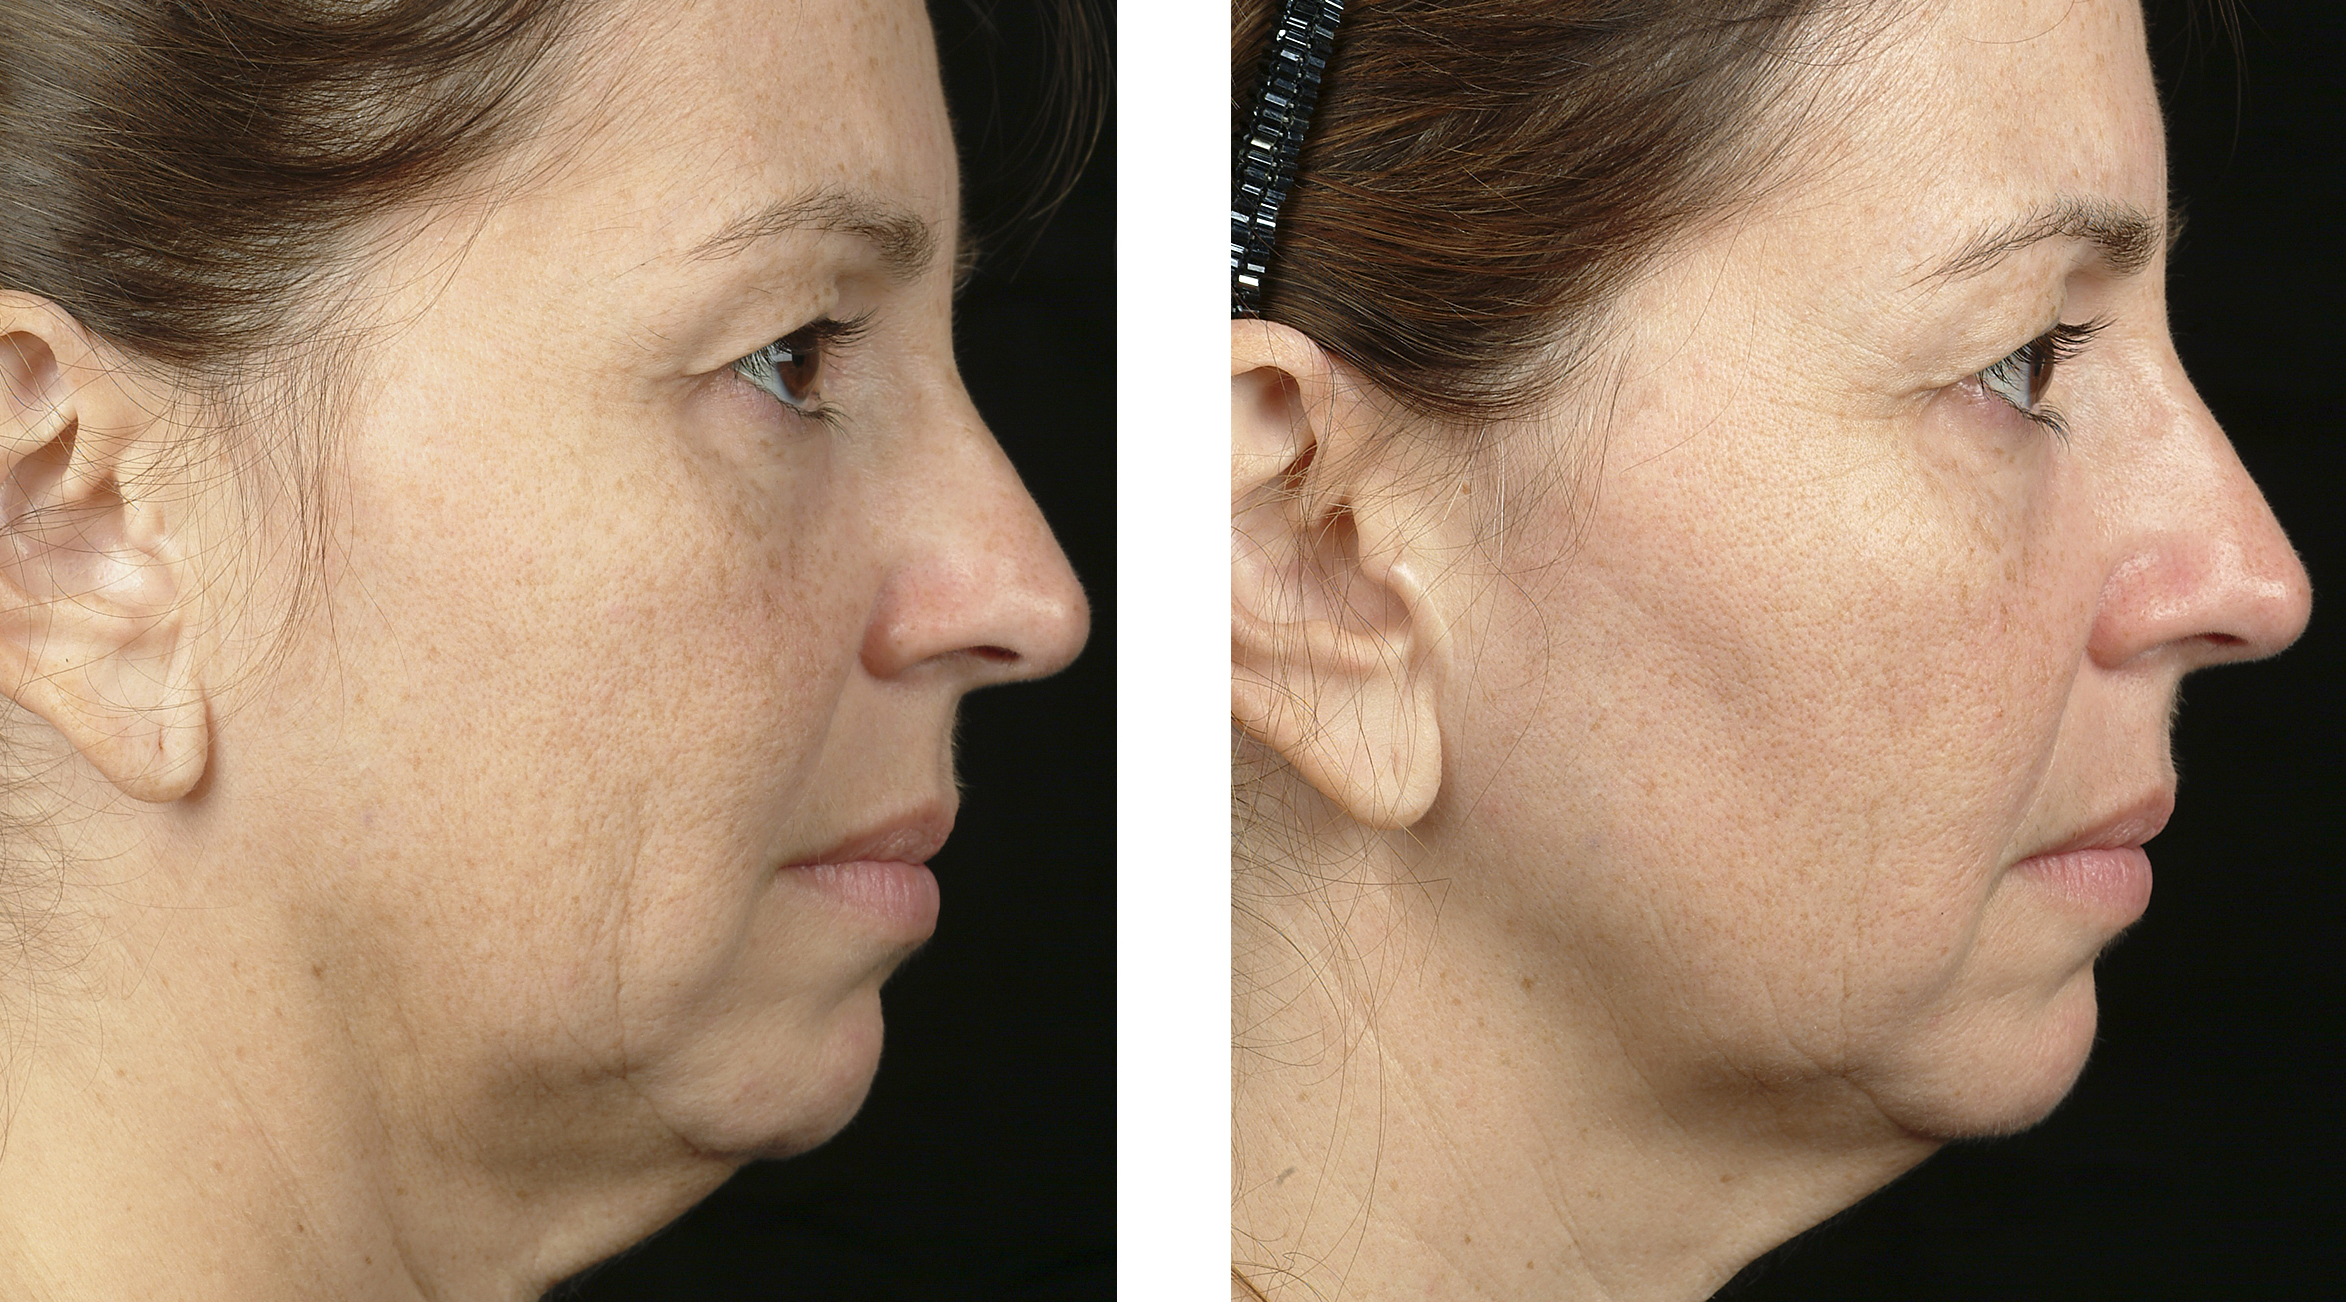 Mid/Lower face and neck treatment  by Flor Mayoral, MD.1.5cm tip, pre and 6 month follow up